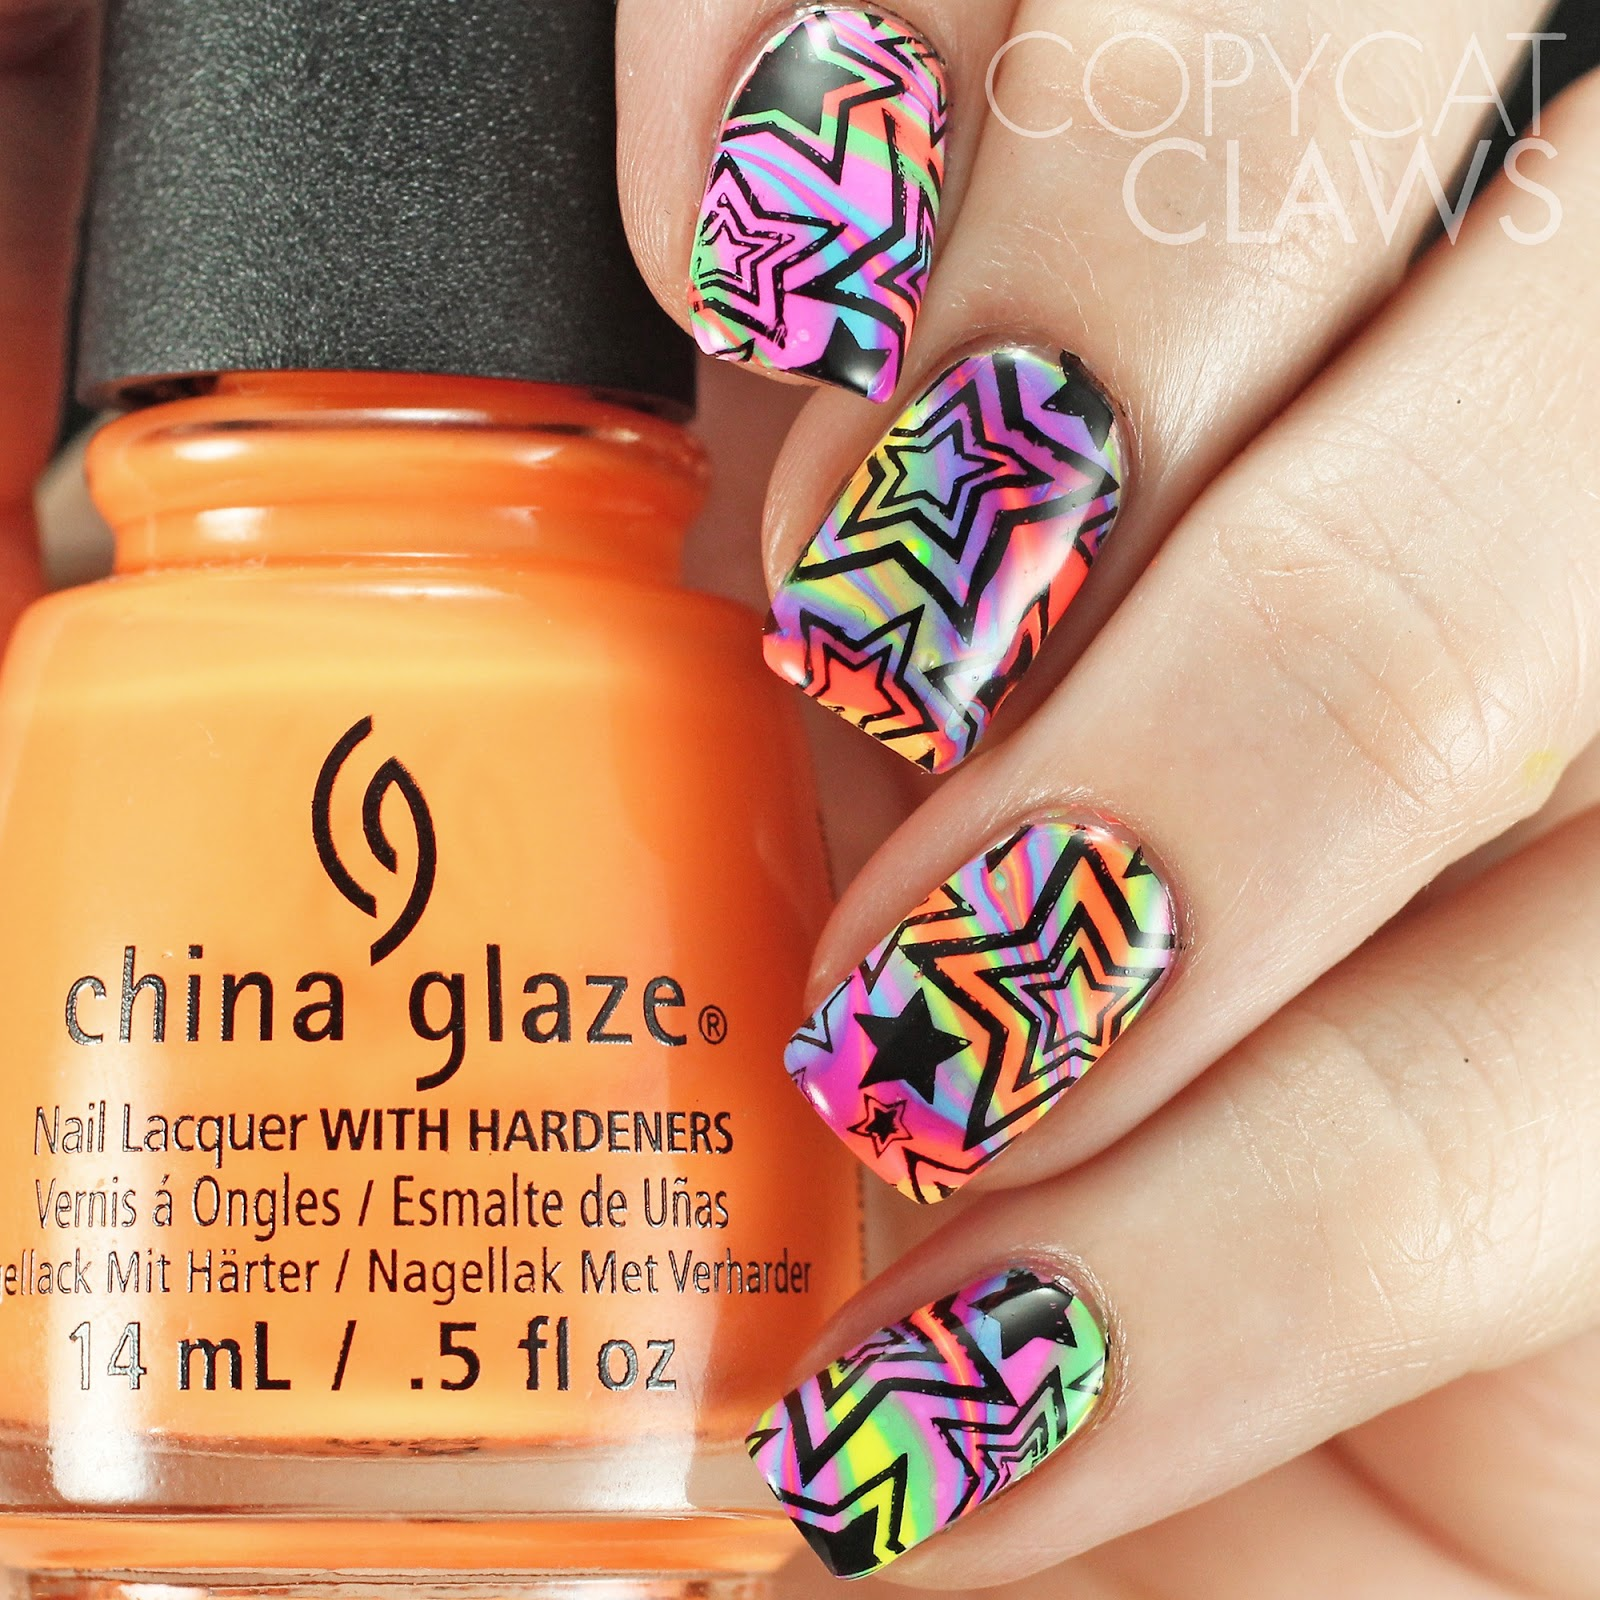 Copycat Claws: The Digit-al Dozen does Neon: Day 2 Water Marble ...